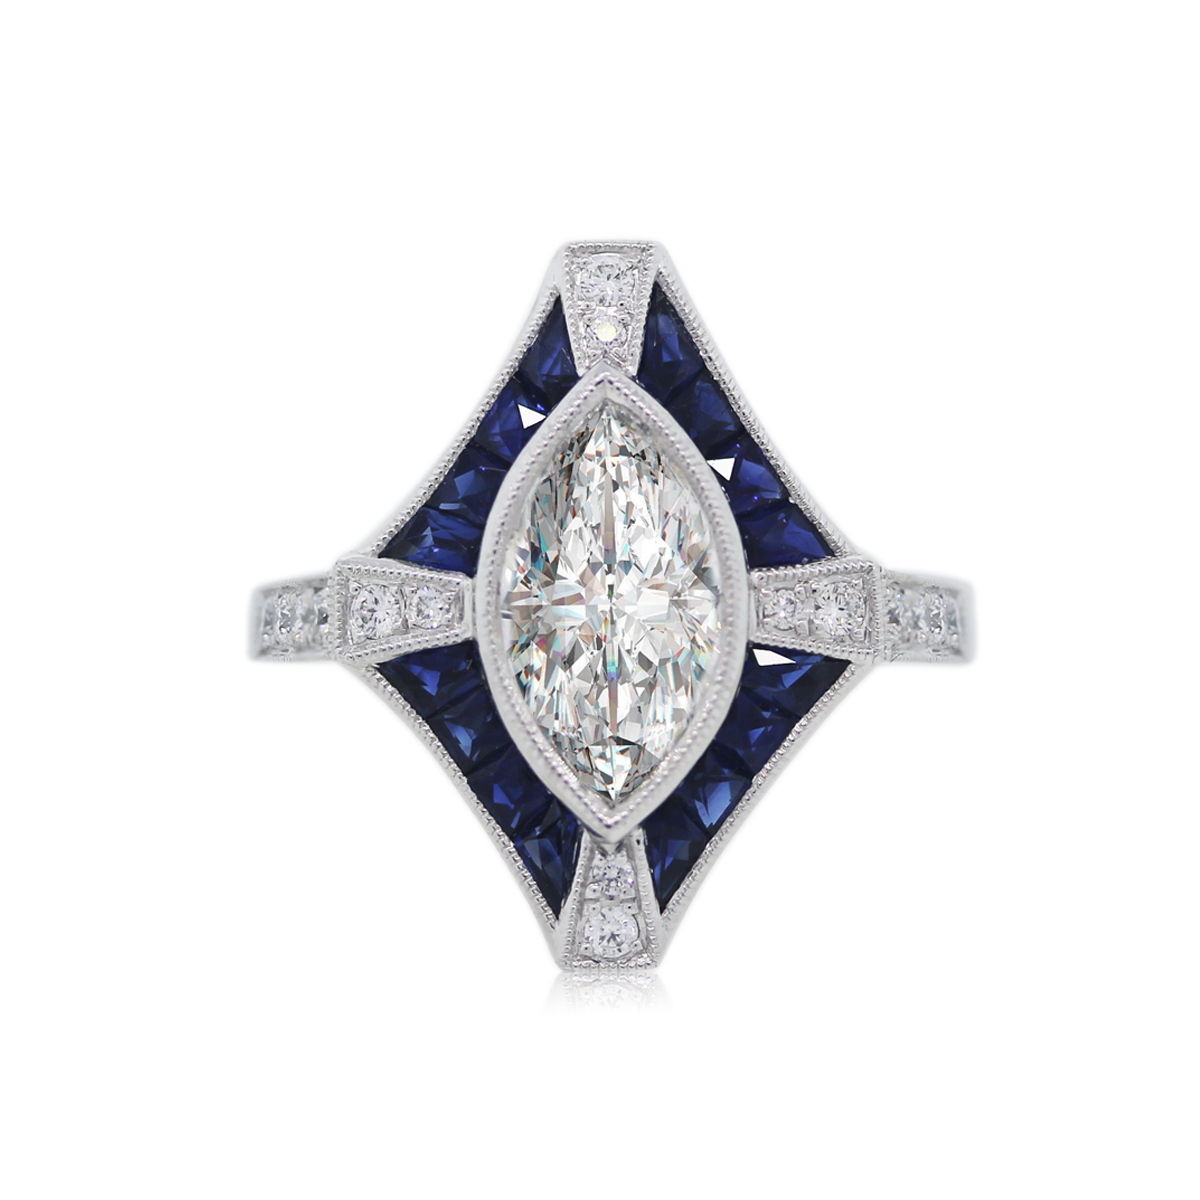 You are Viewing this Stunning 1.59ct Marquise Diamond Ring!